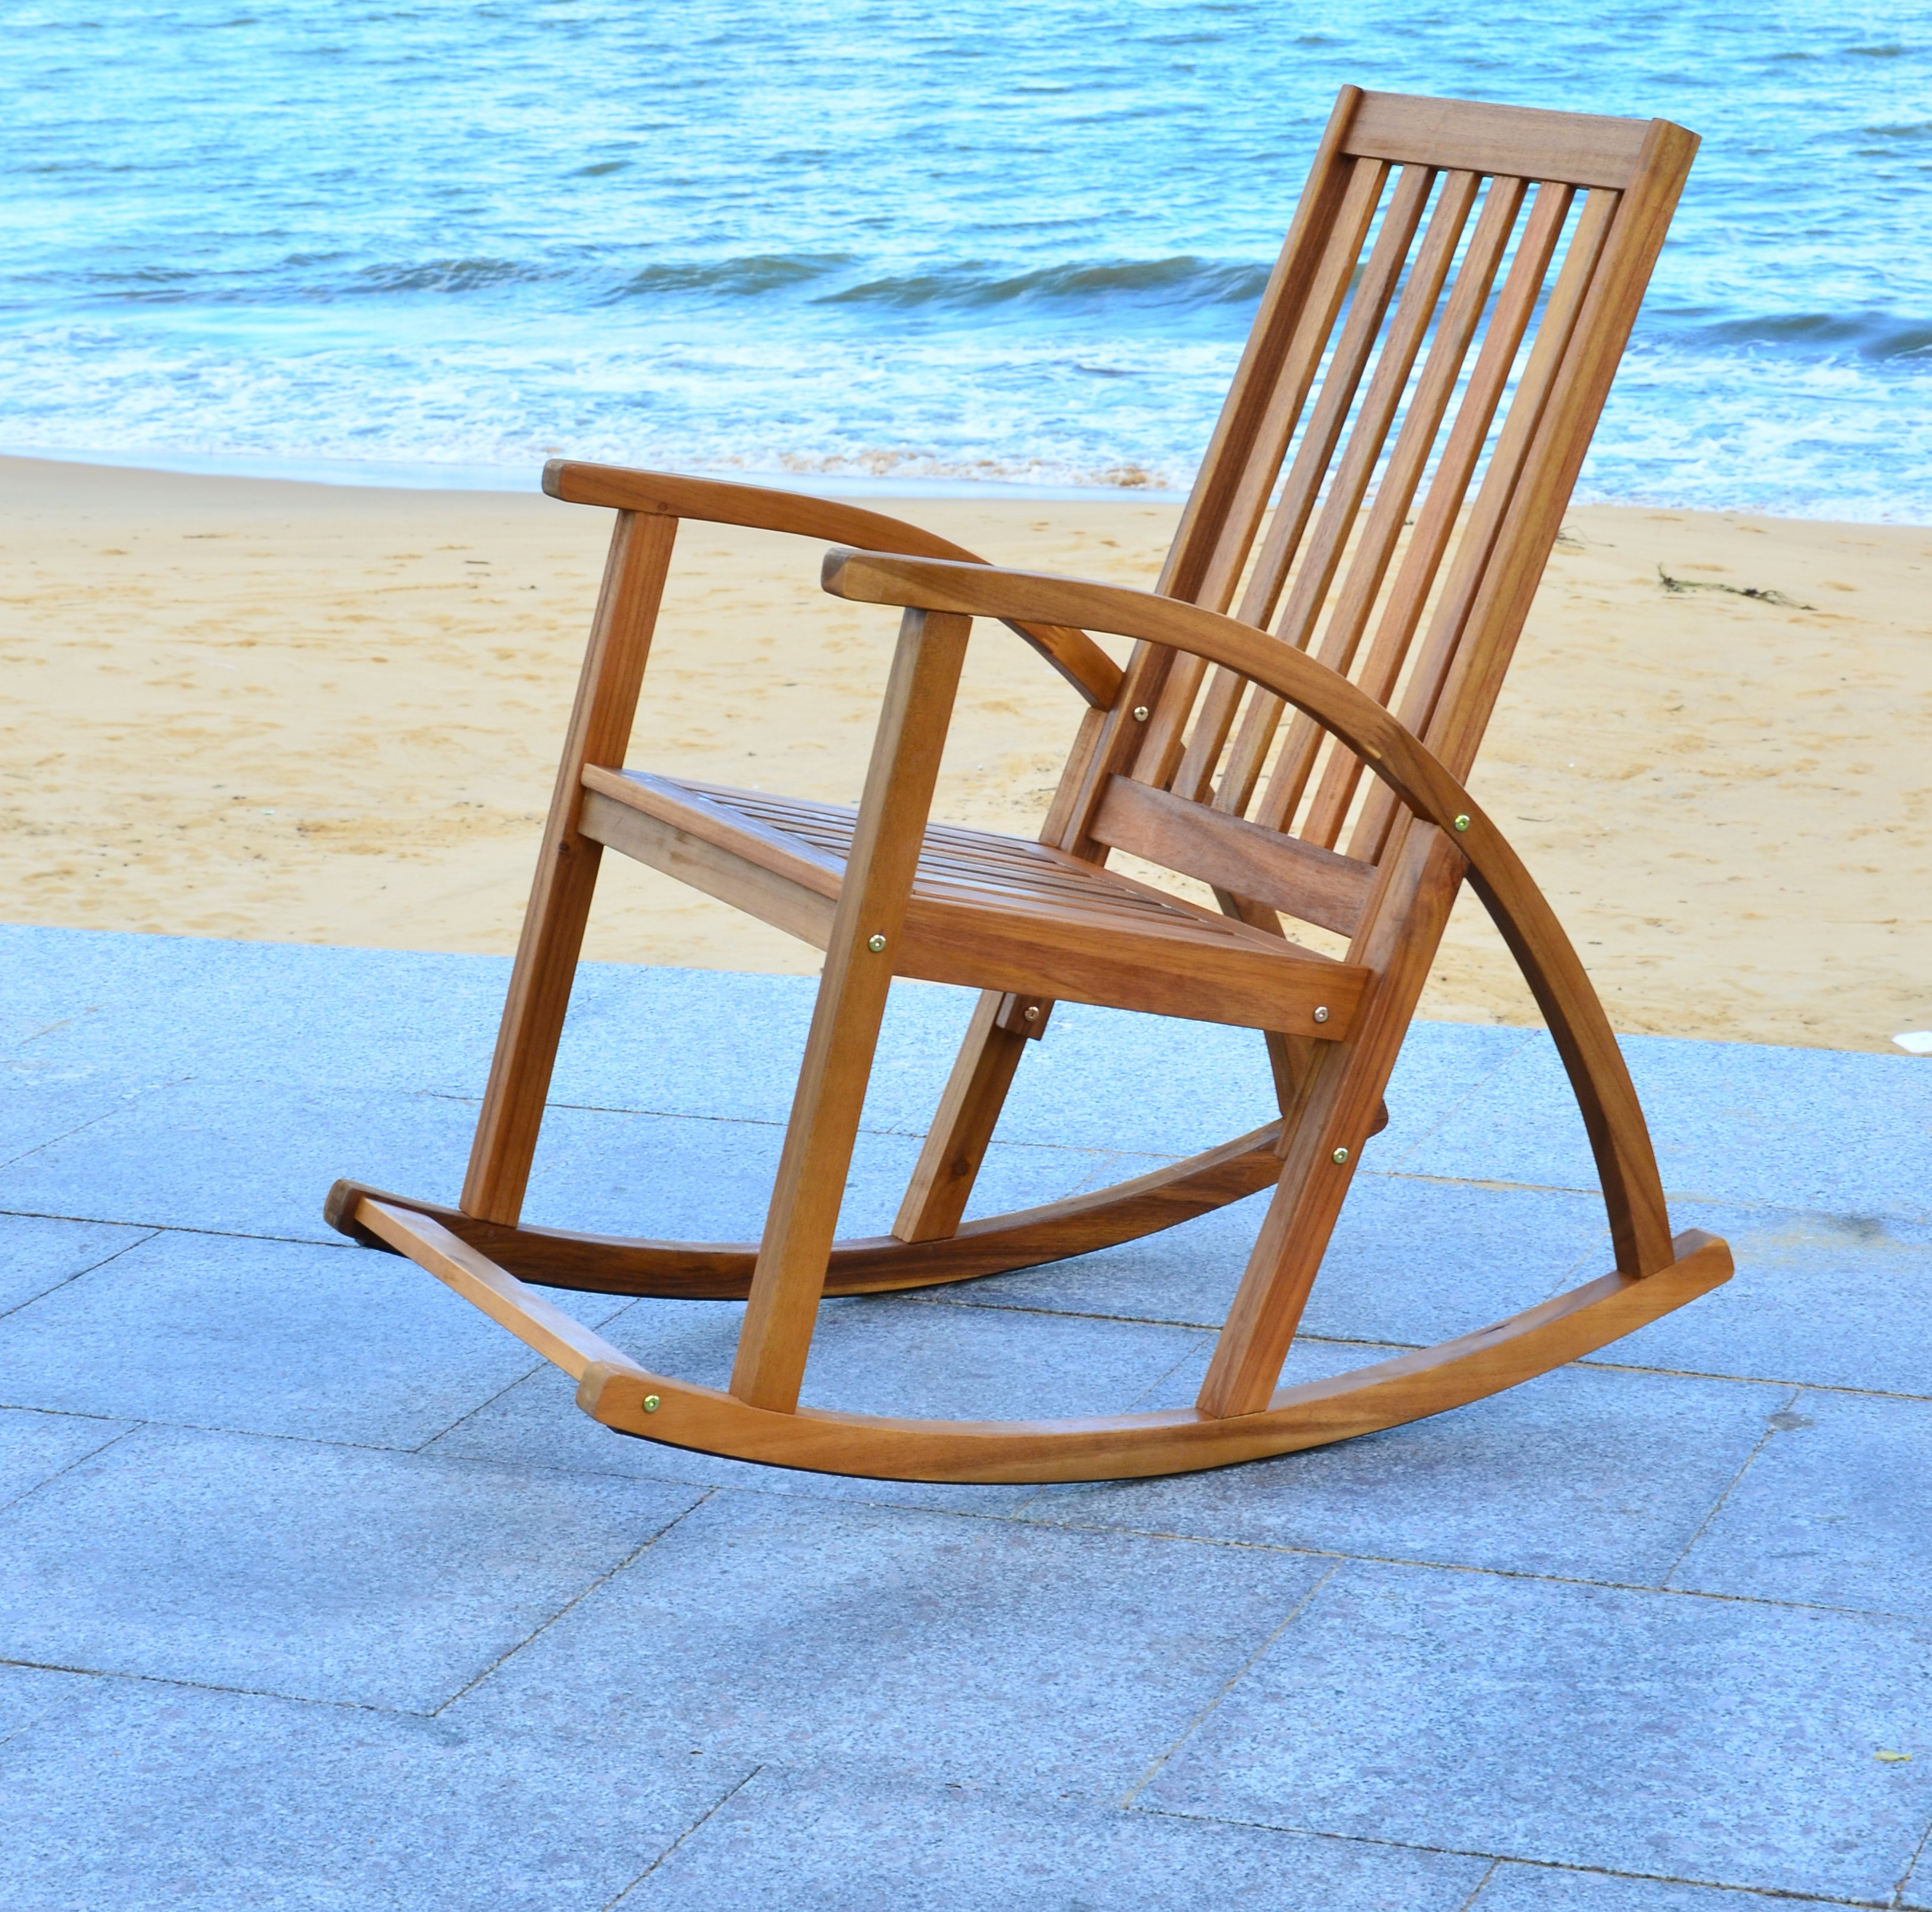 Farmhouse & Rustic Outdoor Rockers & Gliders | Birch Lane Intended For Brown Wood Youth Rocking Chairs (#11 of 20)